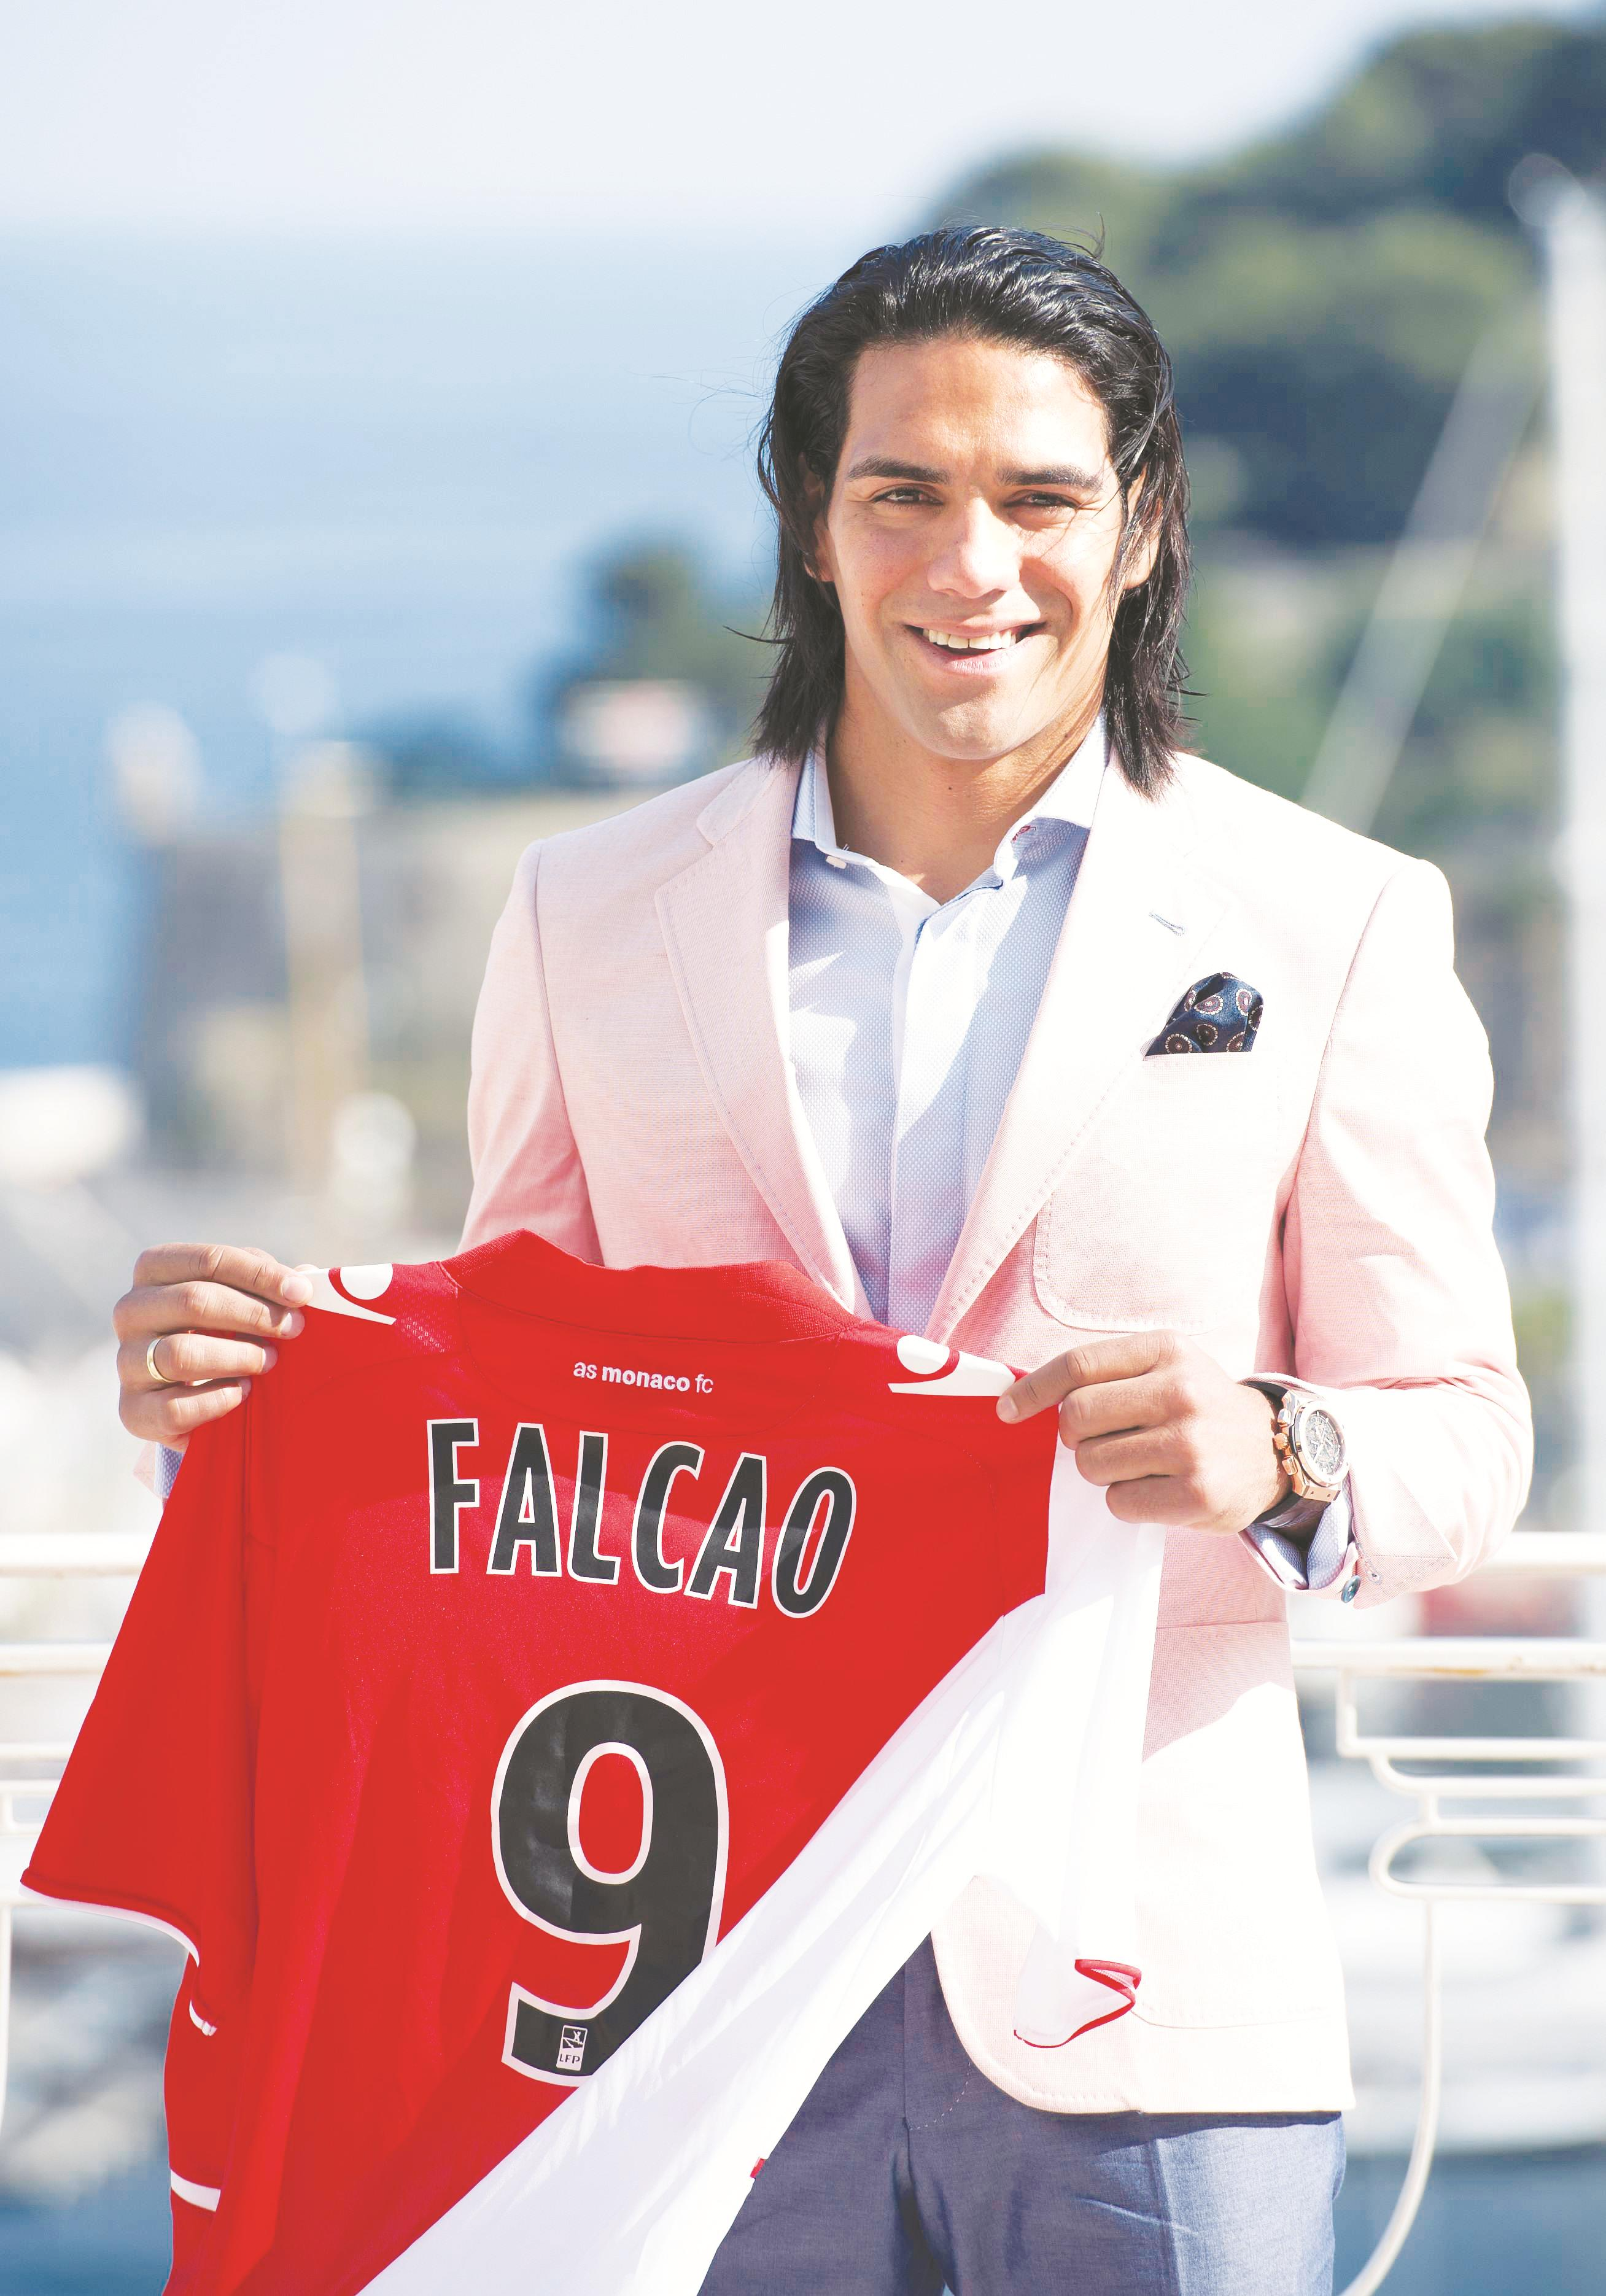 be429fc3bfc MONACO-NAMPA/AFP Monaco's newly acquired Colombian striker Radamel Falcao  said on Tuesday that he wanted to steer the ambitious newly-promoted French  Ligue ...